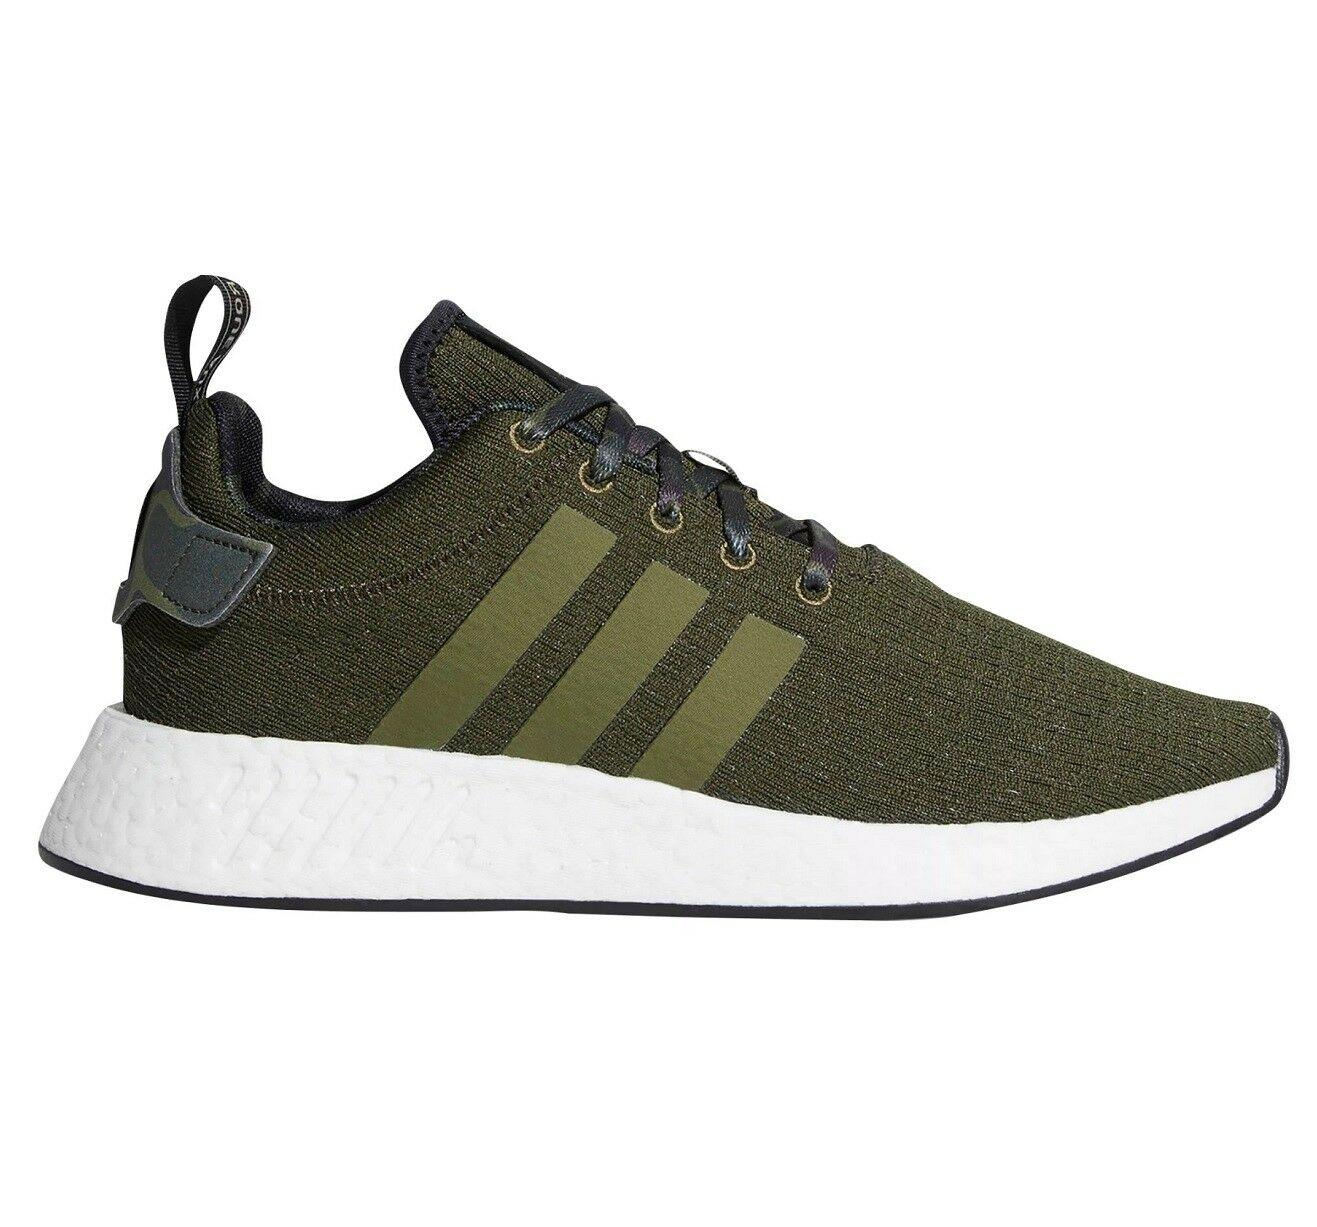 Adidas NMD R2 Mens B22630 Olive Cargo Green Boost Knit Athletic Shoes Size 10